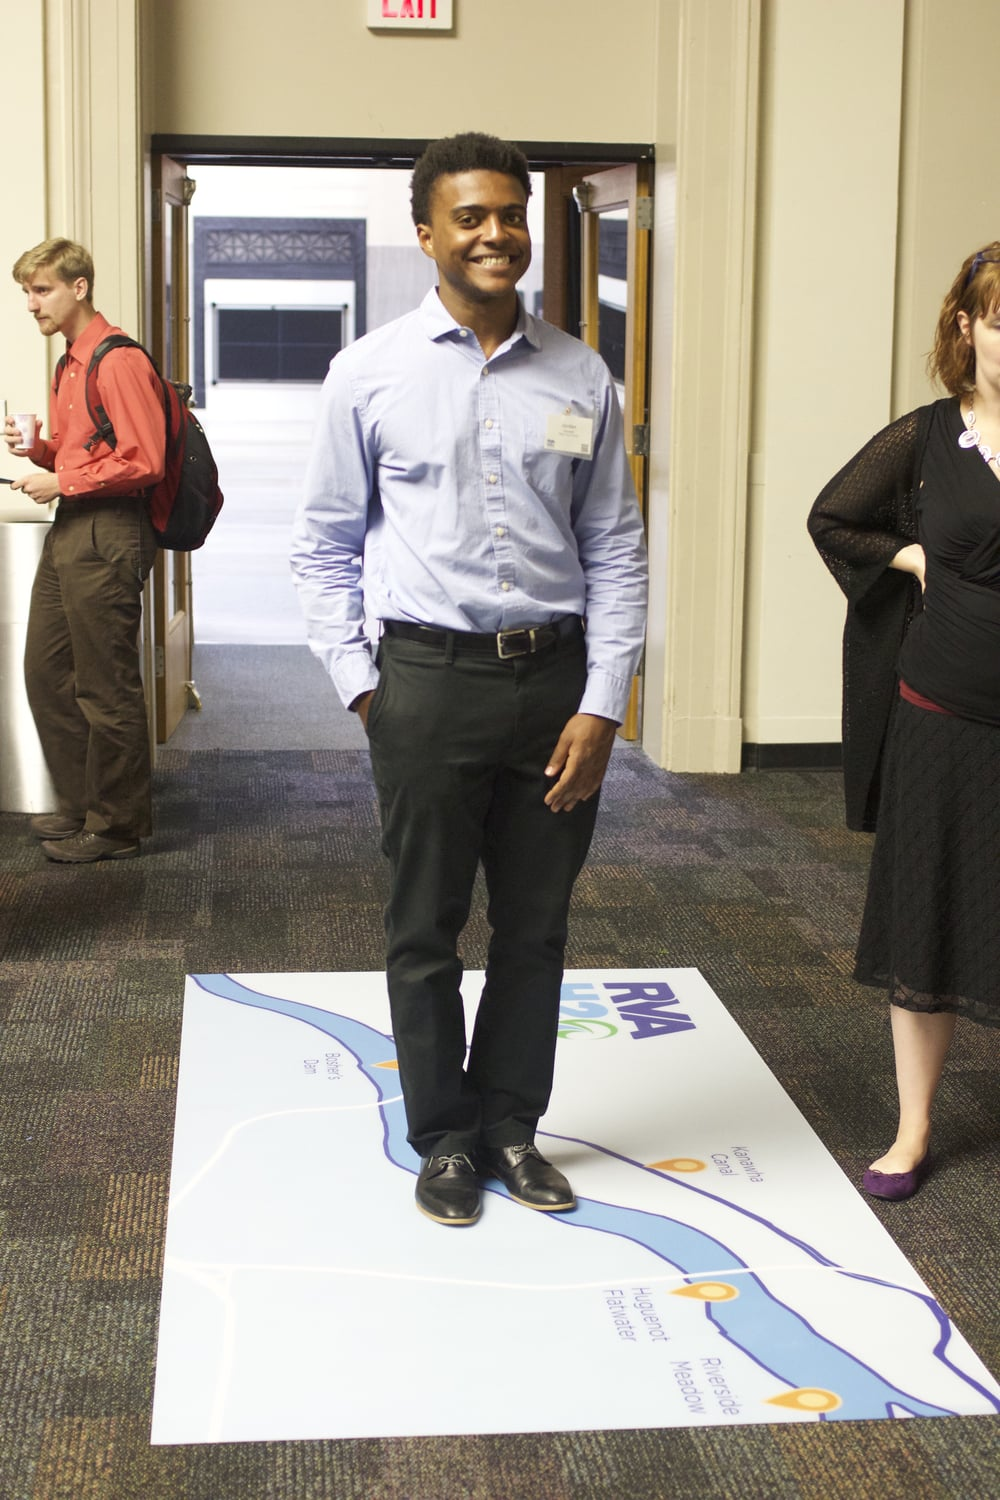 2015 Account Management Intern, Jordan Fennell, at RVAH2O Community Open House